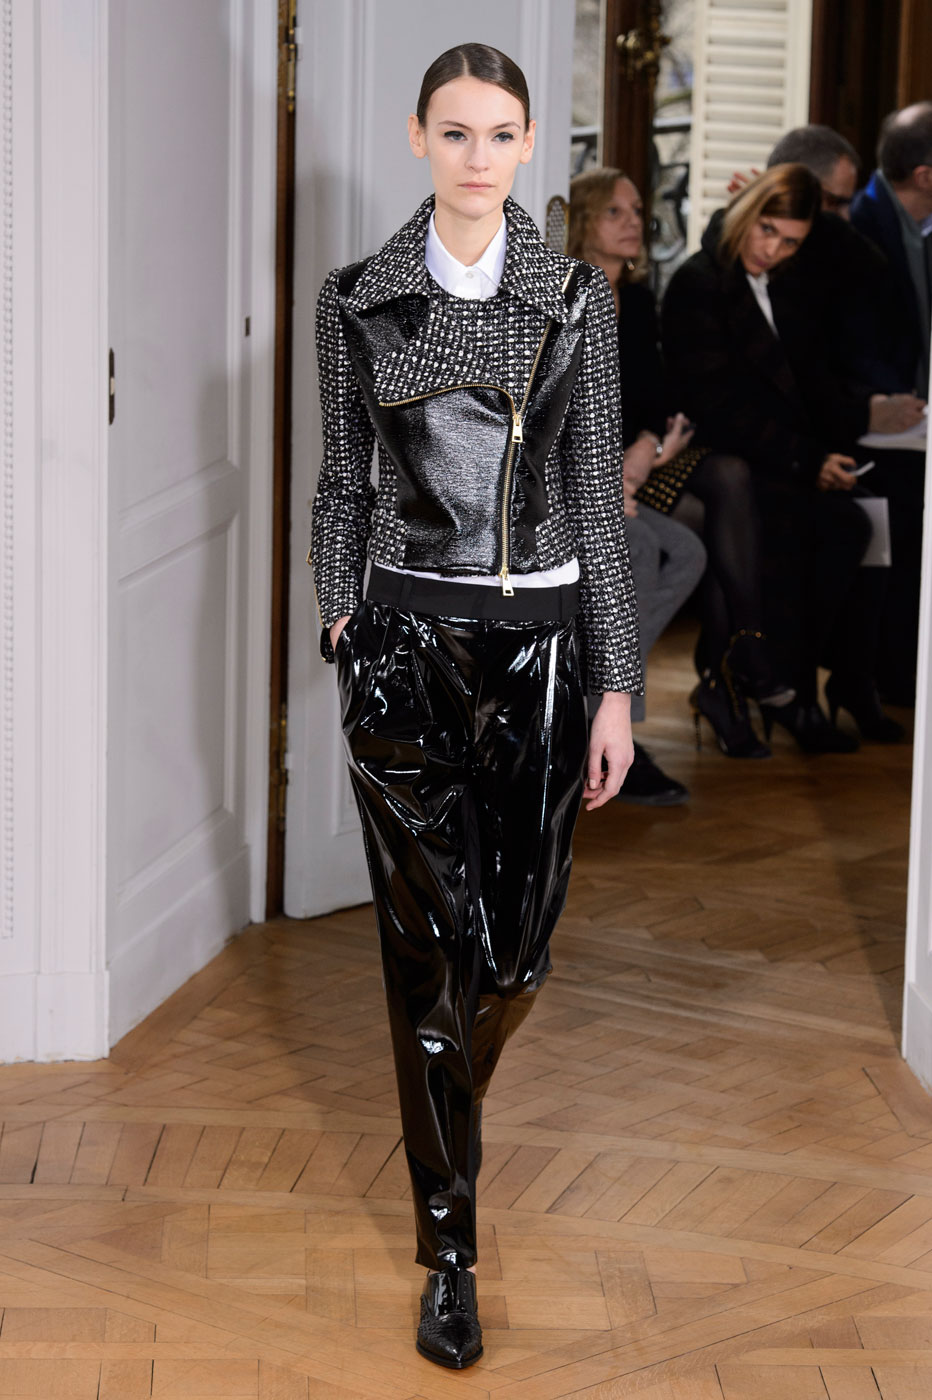 Bouchra-Jarrar-fashion-runway-show-haute-couture-paris-spring-summer-2015-the-impression-01